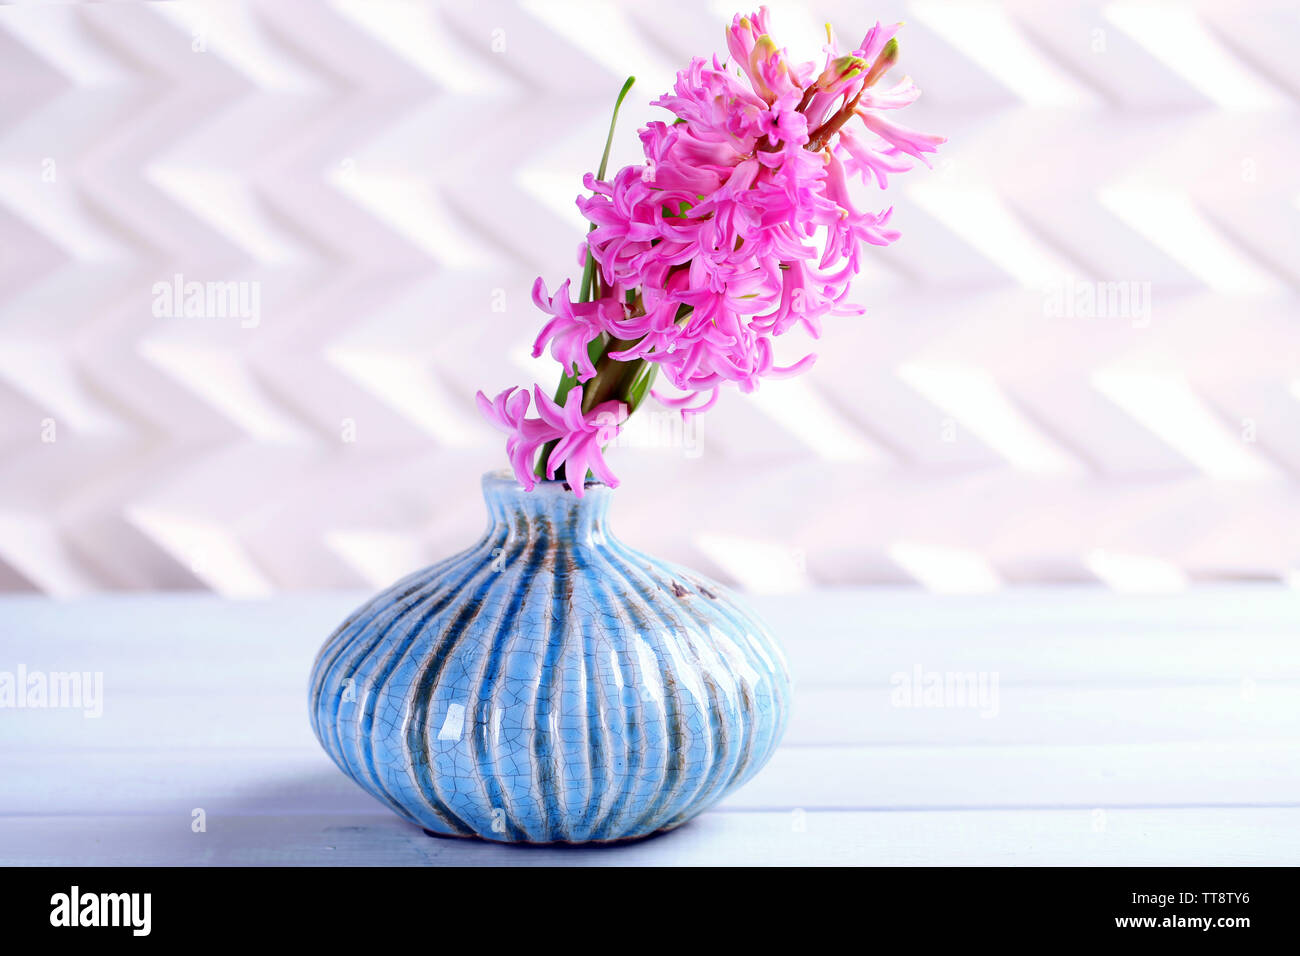 Beautiful hyacinth flower in vase on wooden table - Stock Image